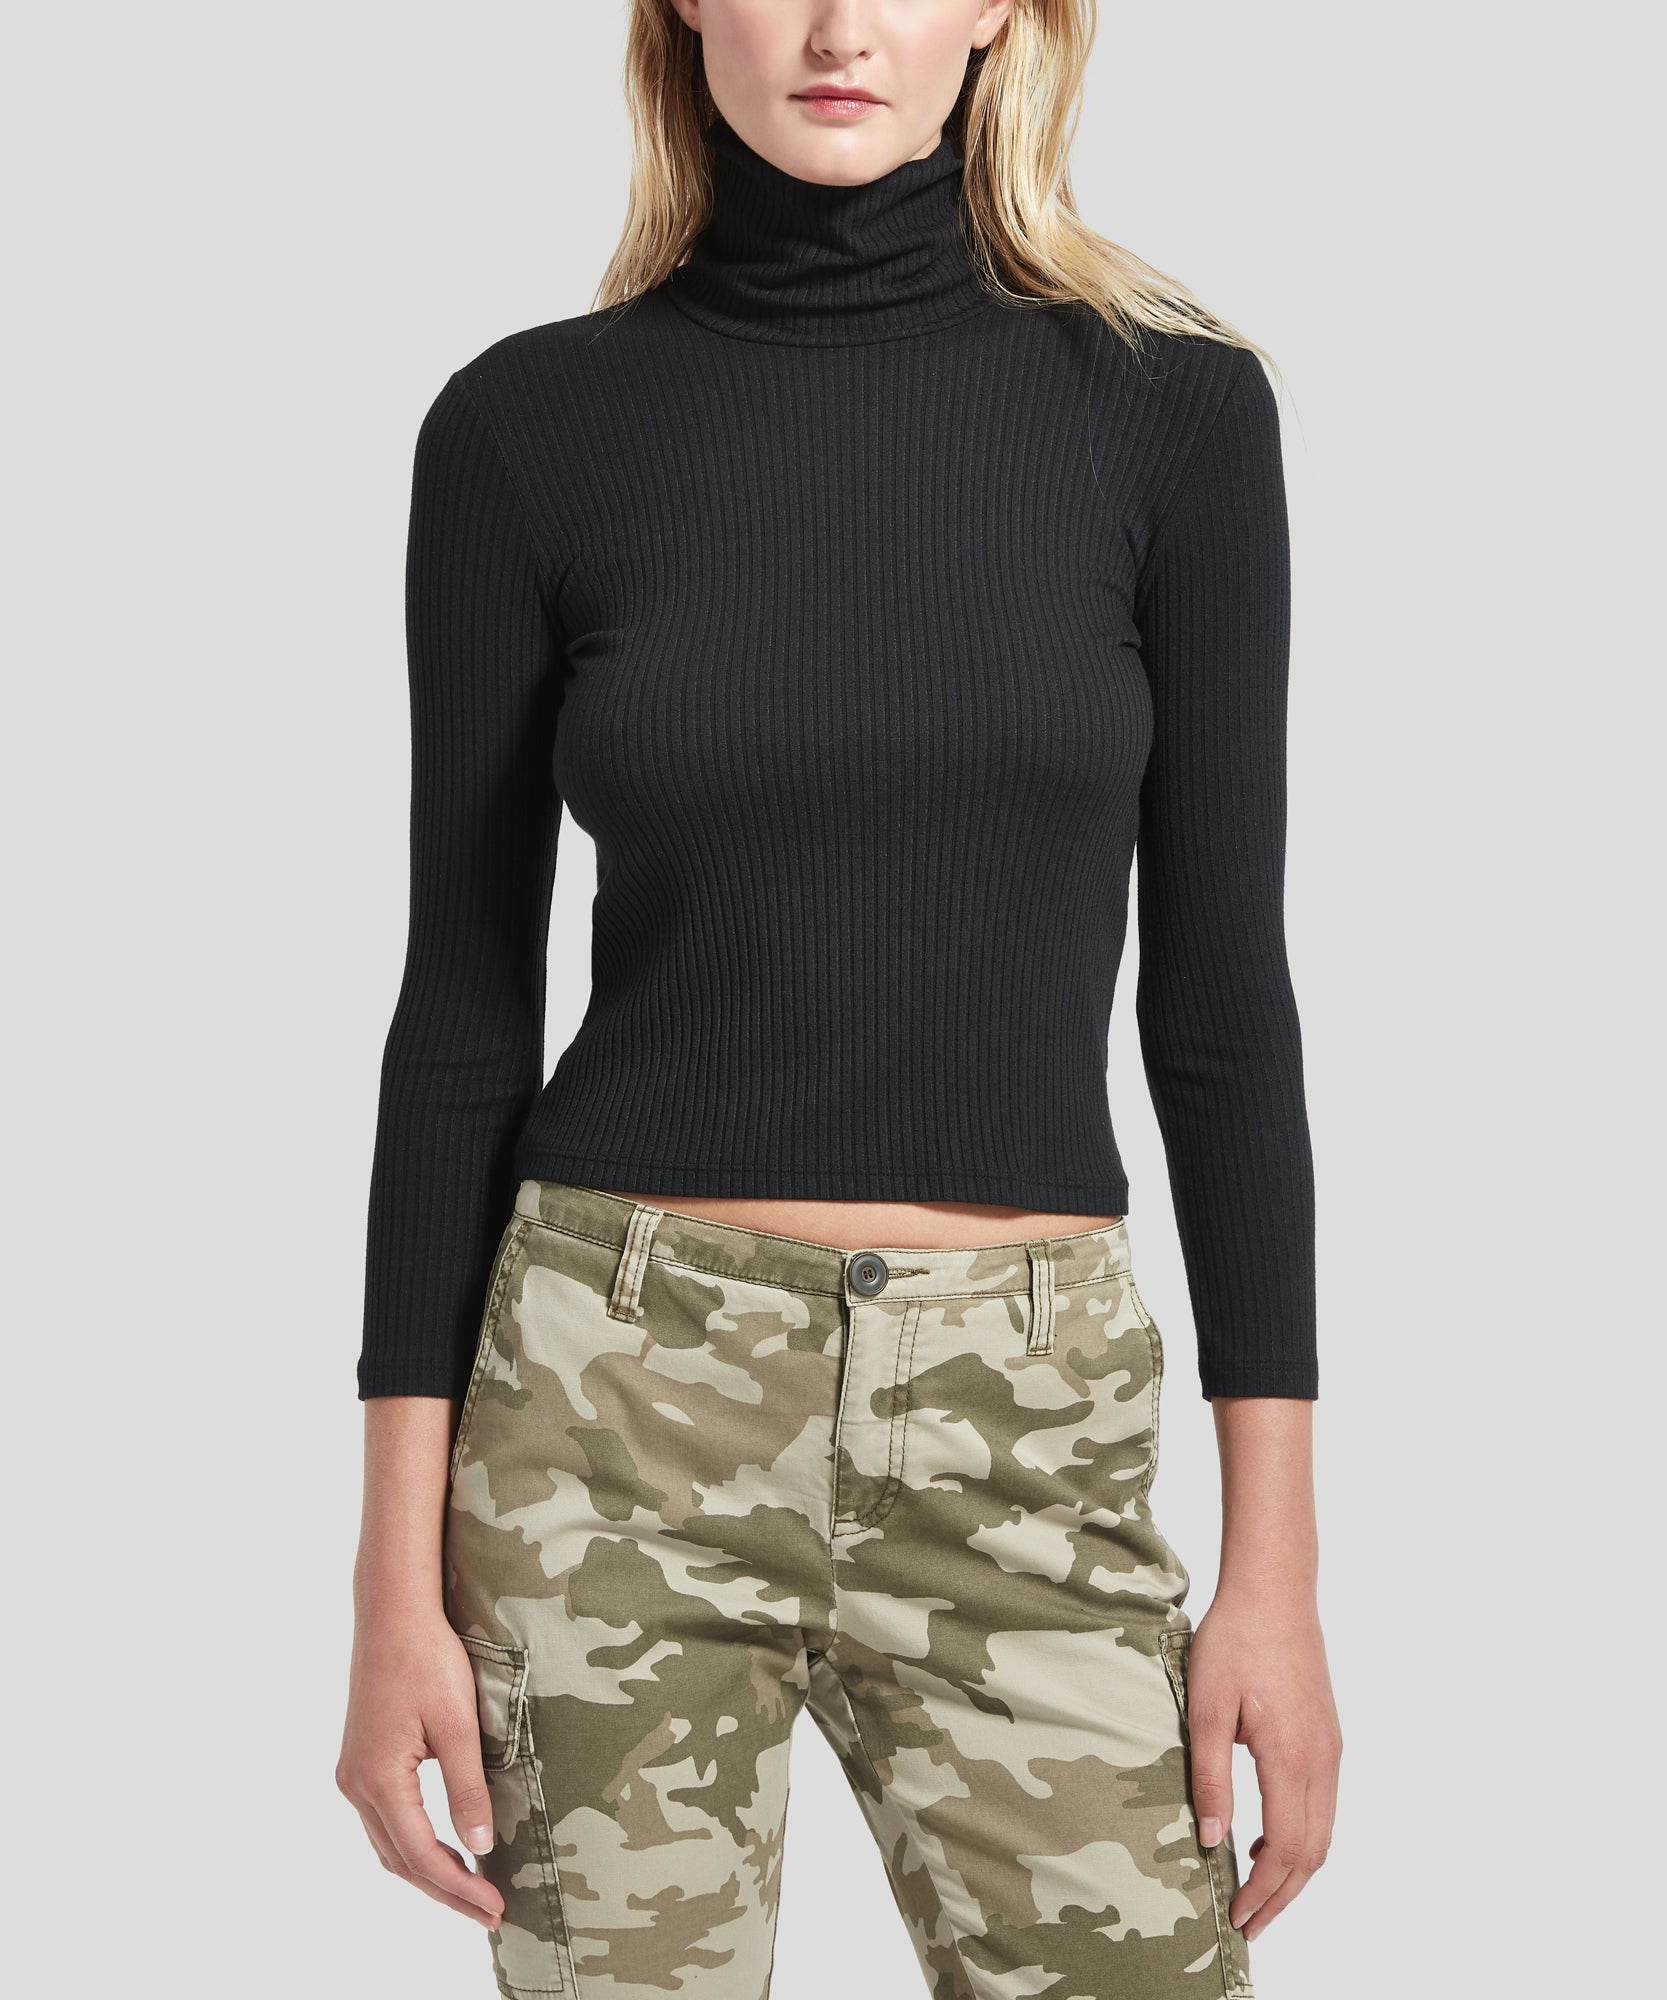 ATM Modal Rib Cropped Turtleneck